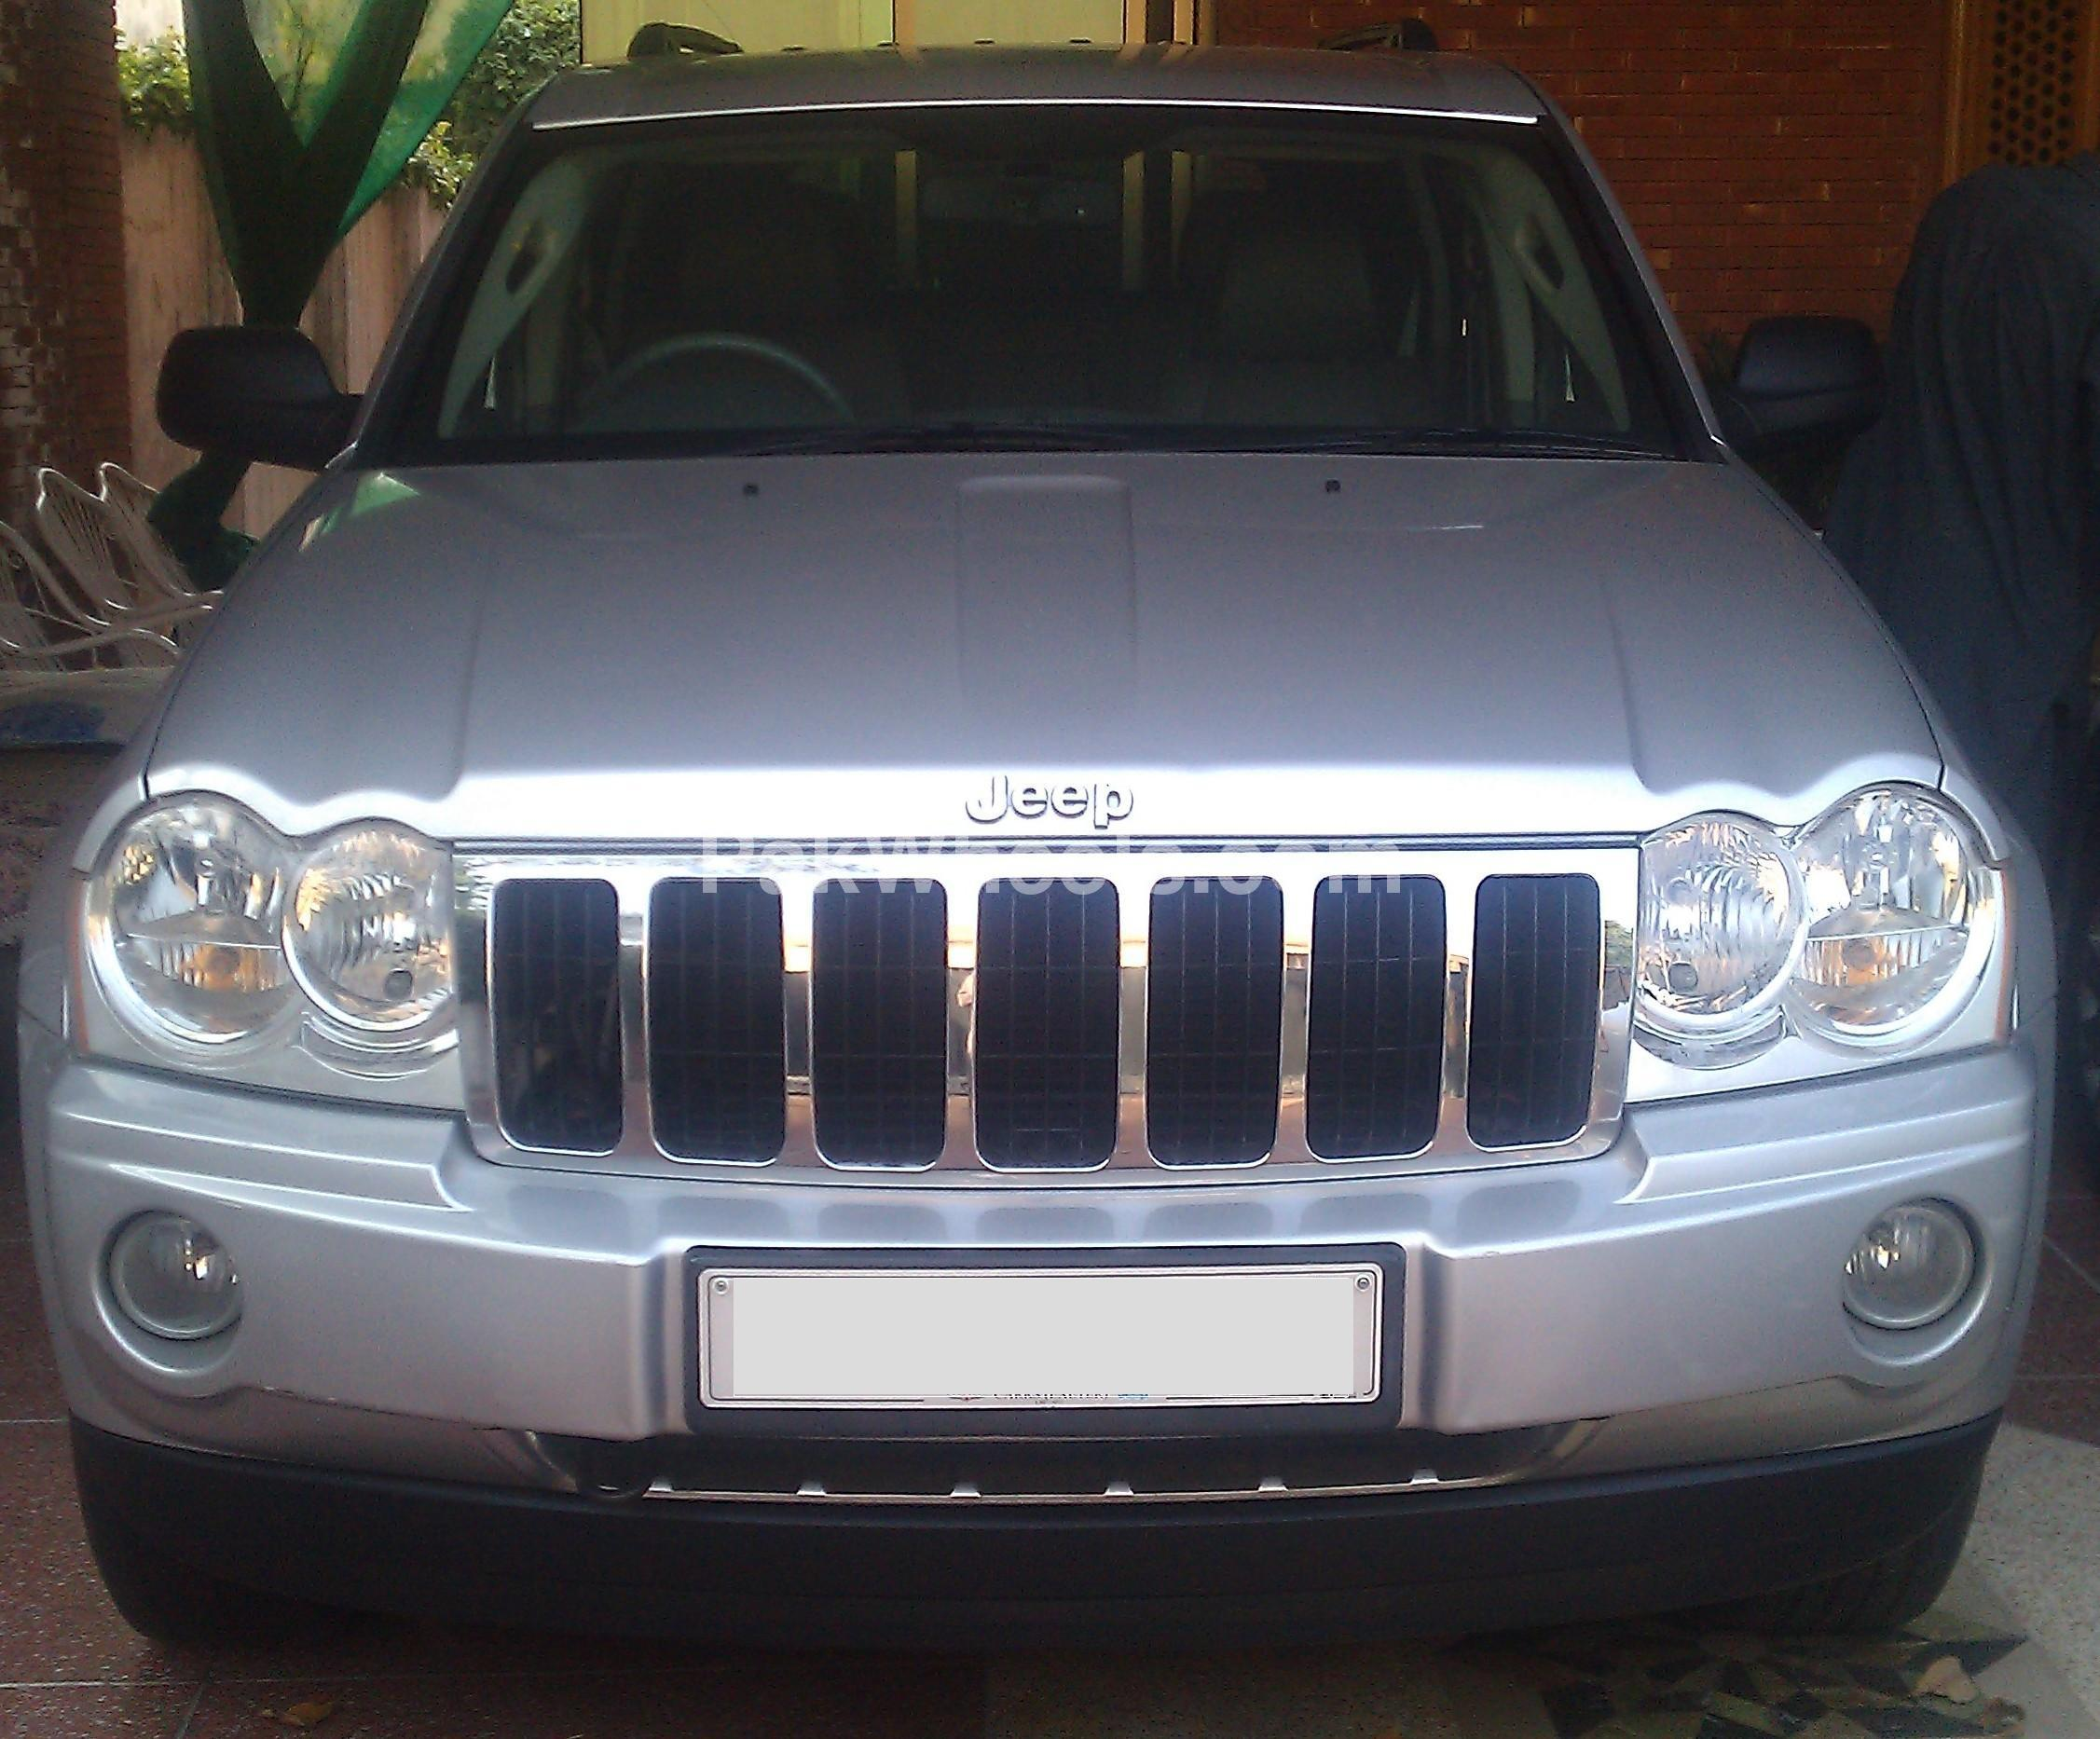 Jeep Cherokee 2005 for sale in Lahore